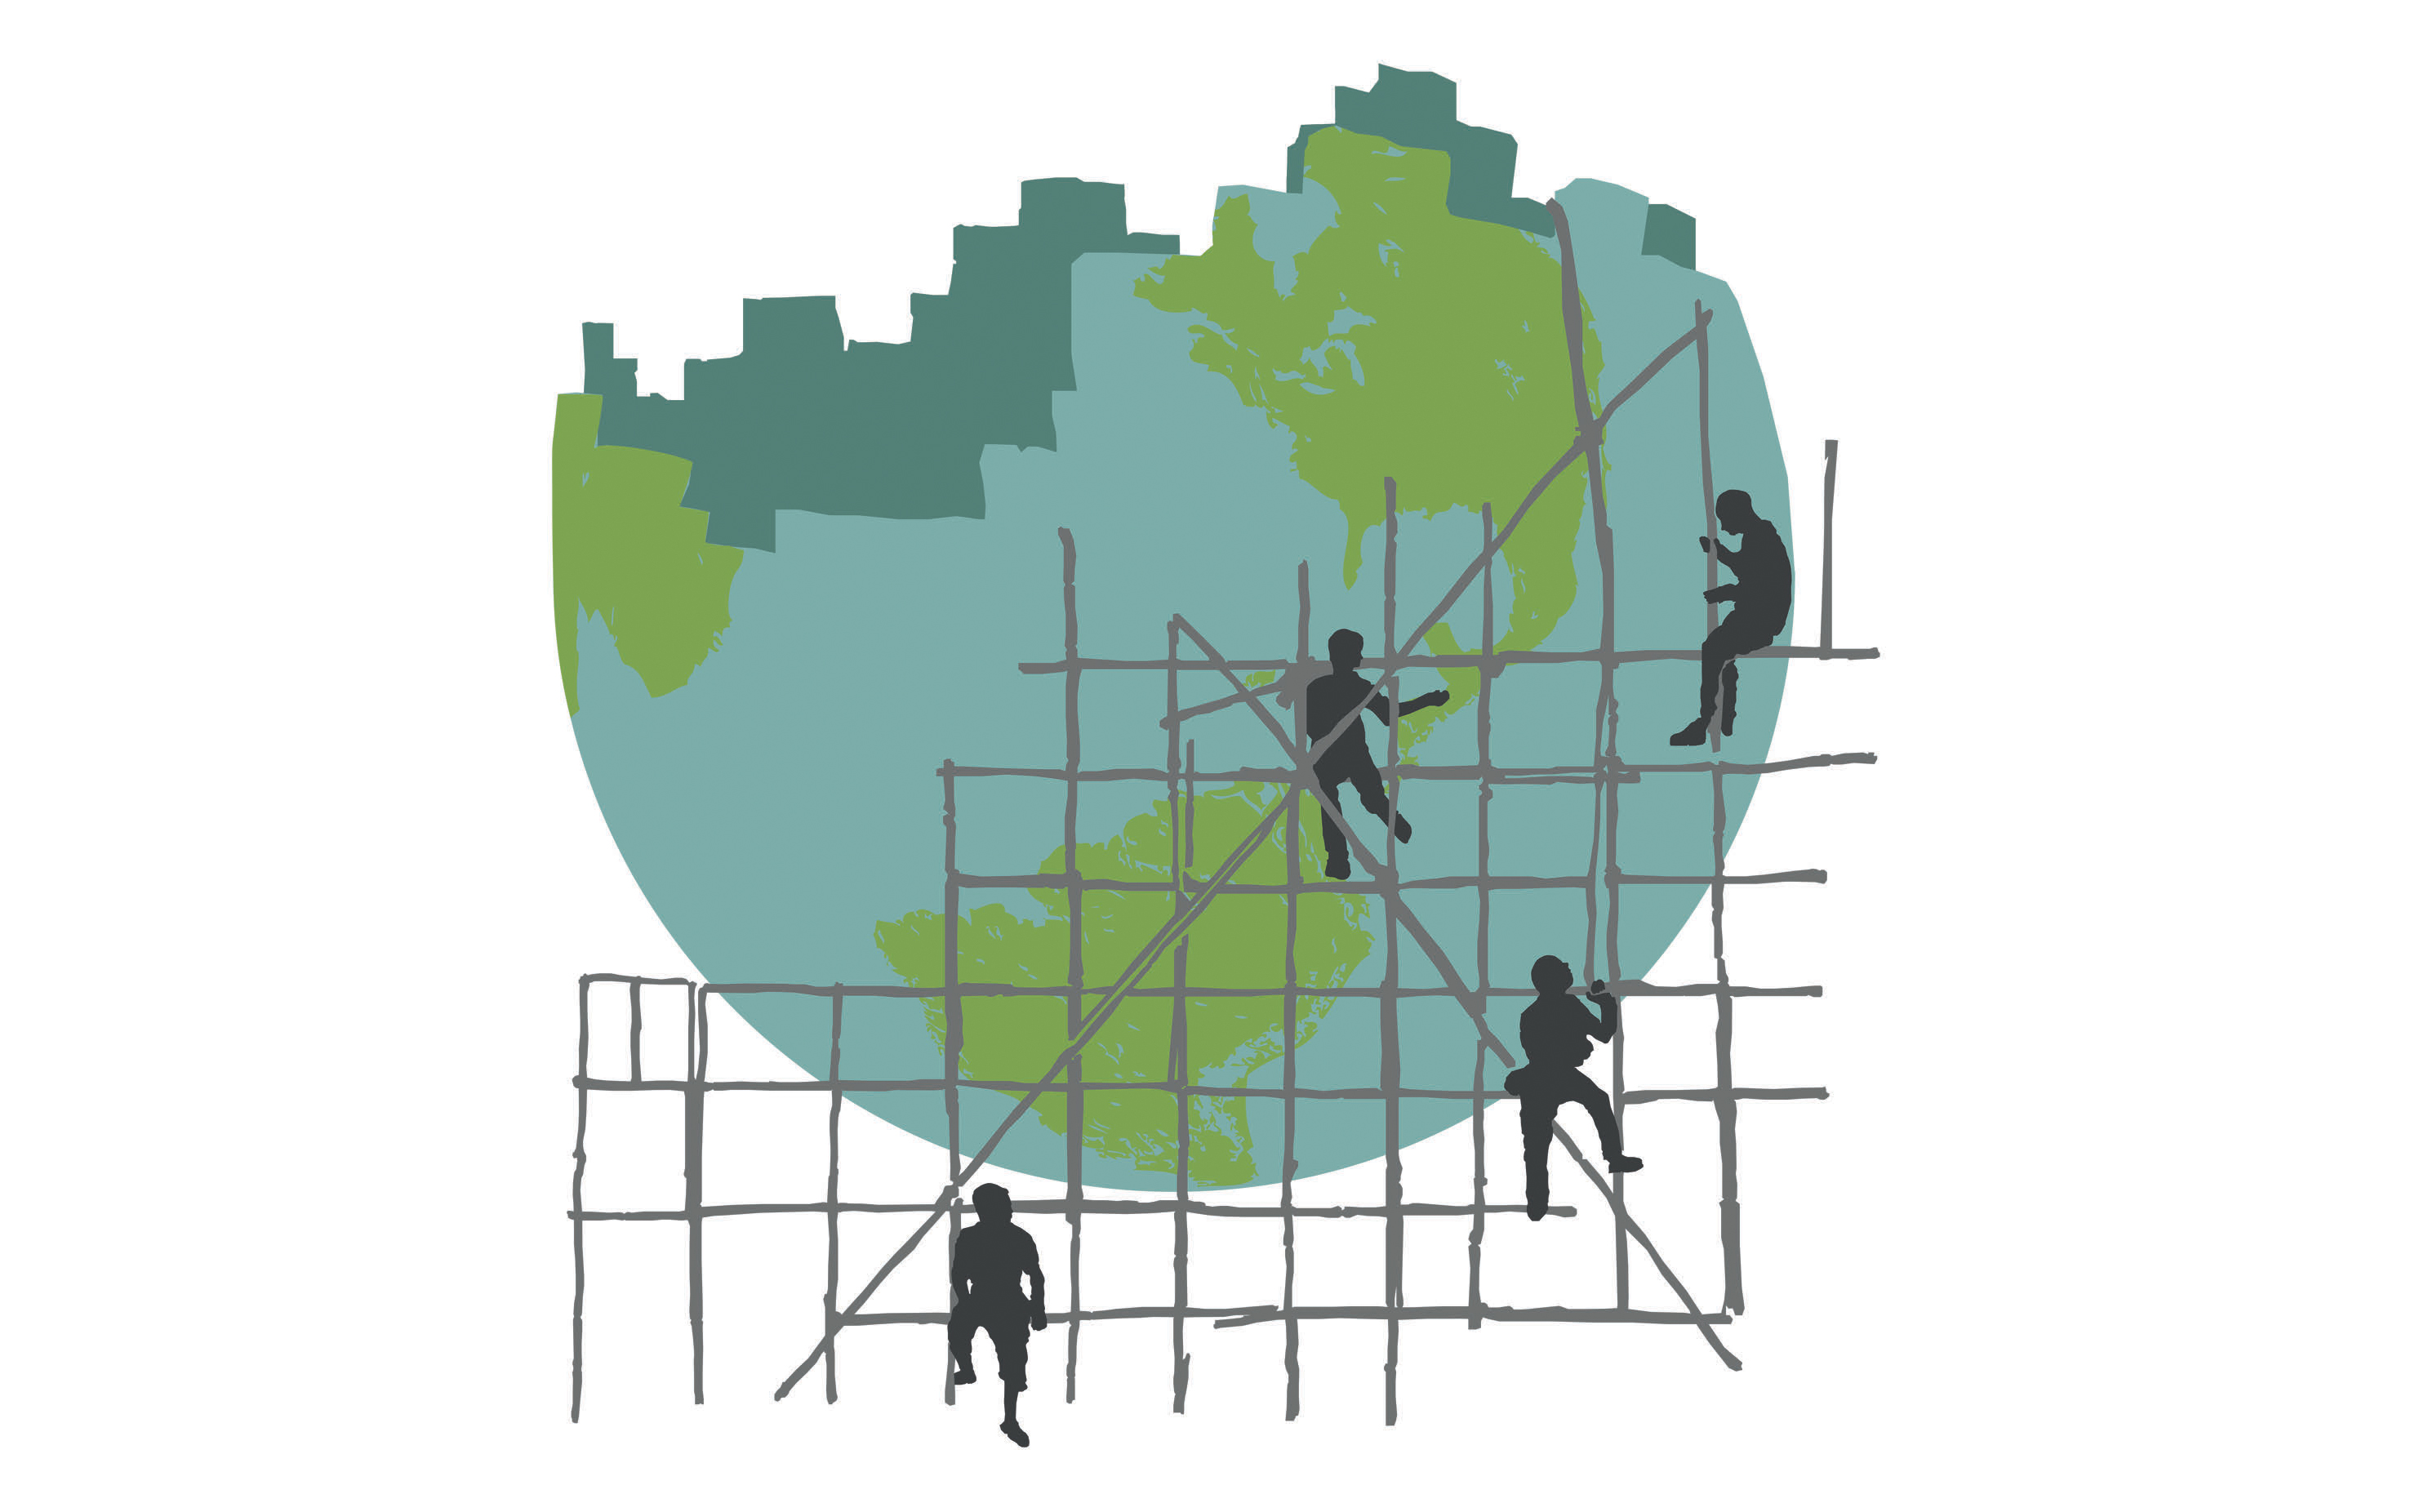 Silhouettes of people on scaffolding with the Earth in the background